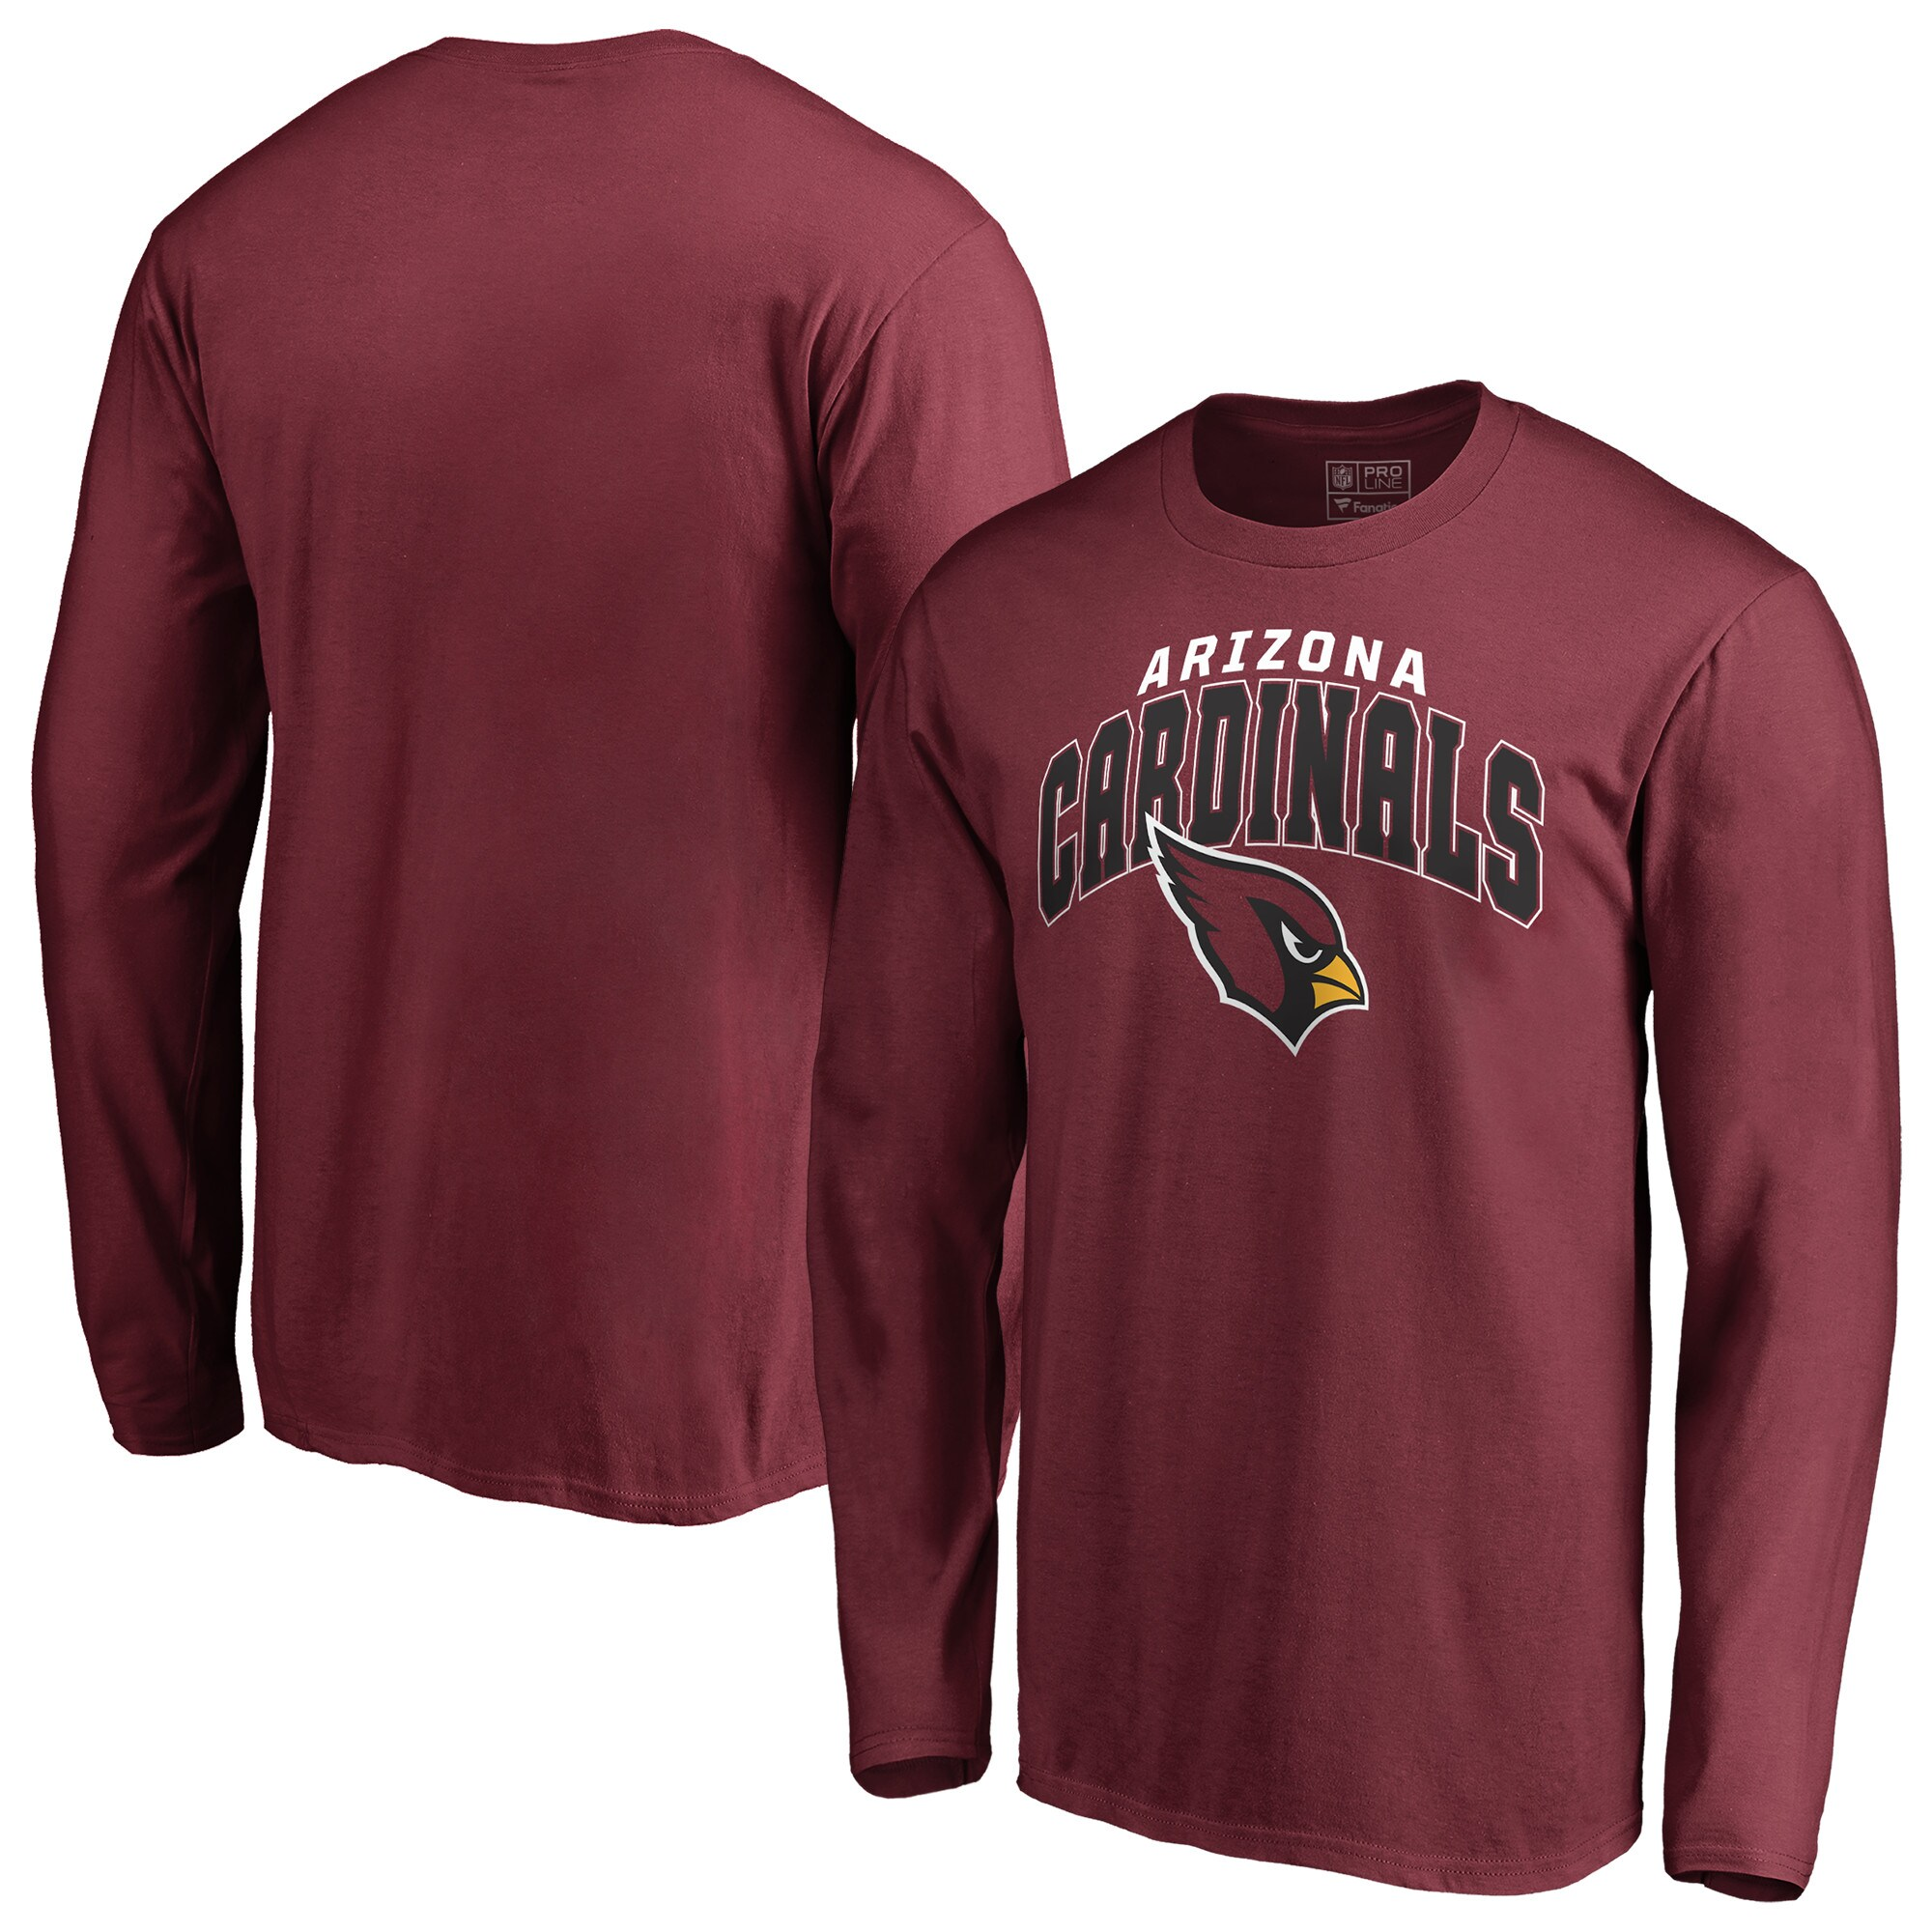 Arizona Cardinals NFL Pro Line by Fanatics Branded Big & Tall Steady Long Sleeve T-Shirt - Cardinal